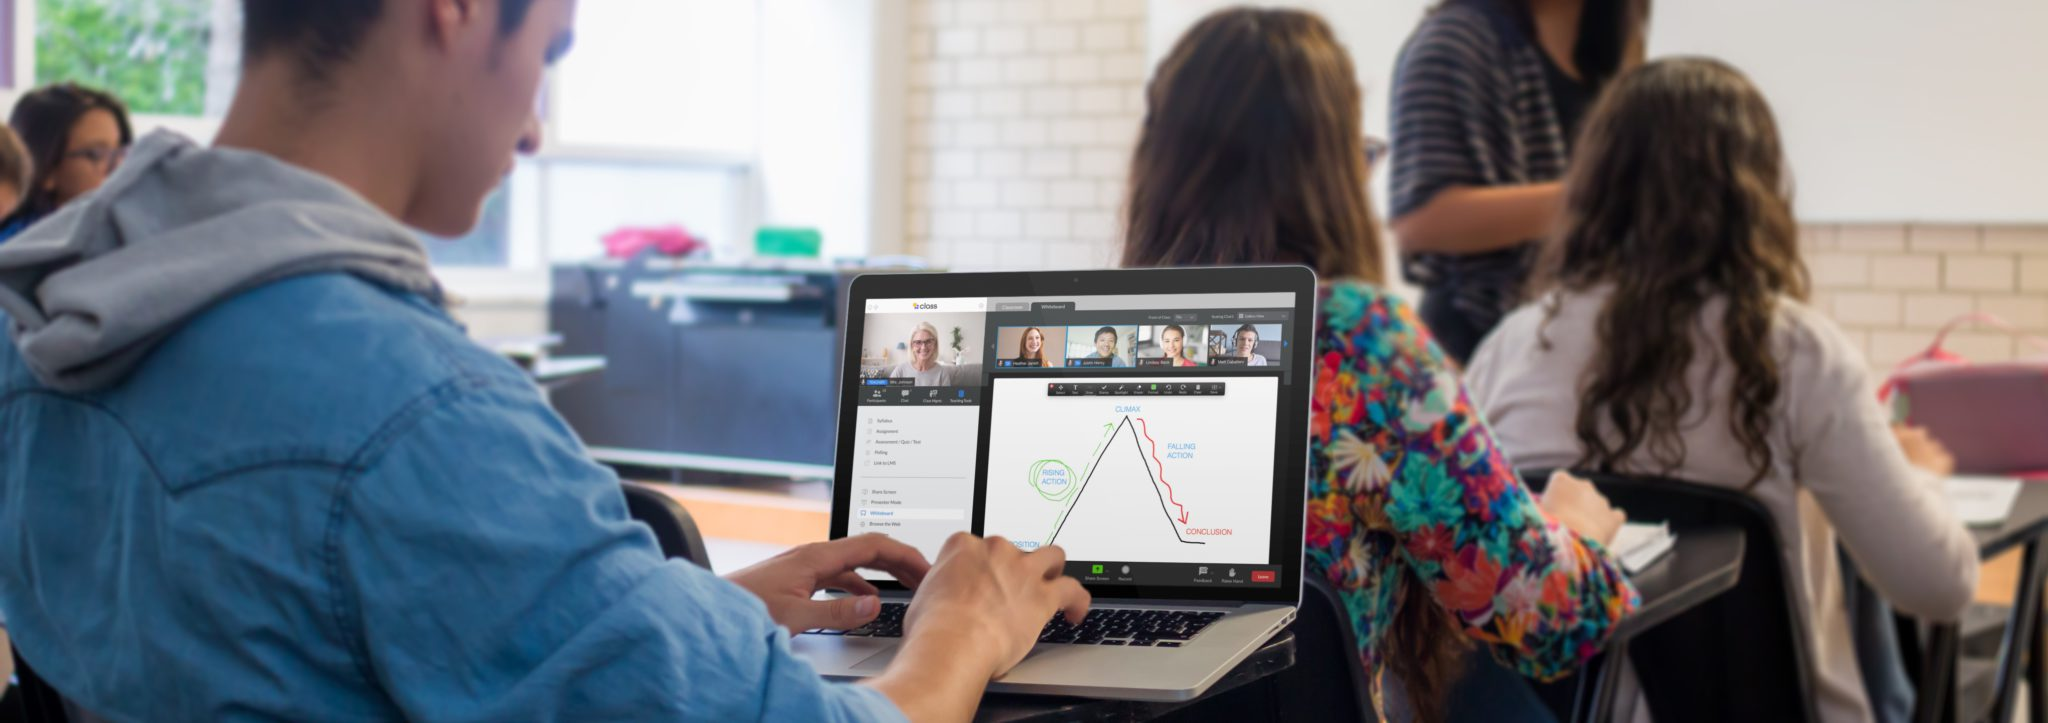 What Is the Difference Between Hybrid and Blended Learning?